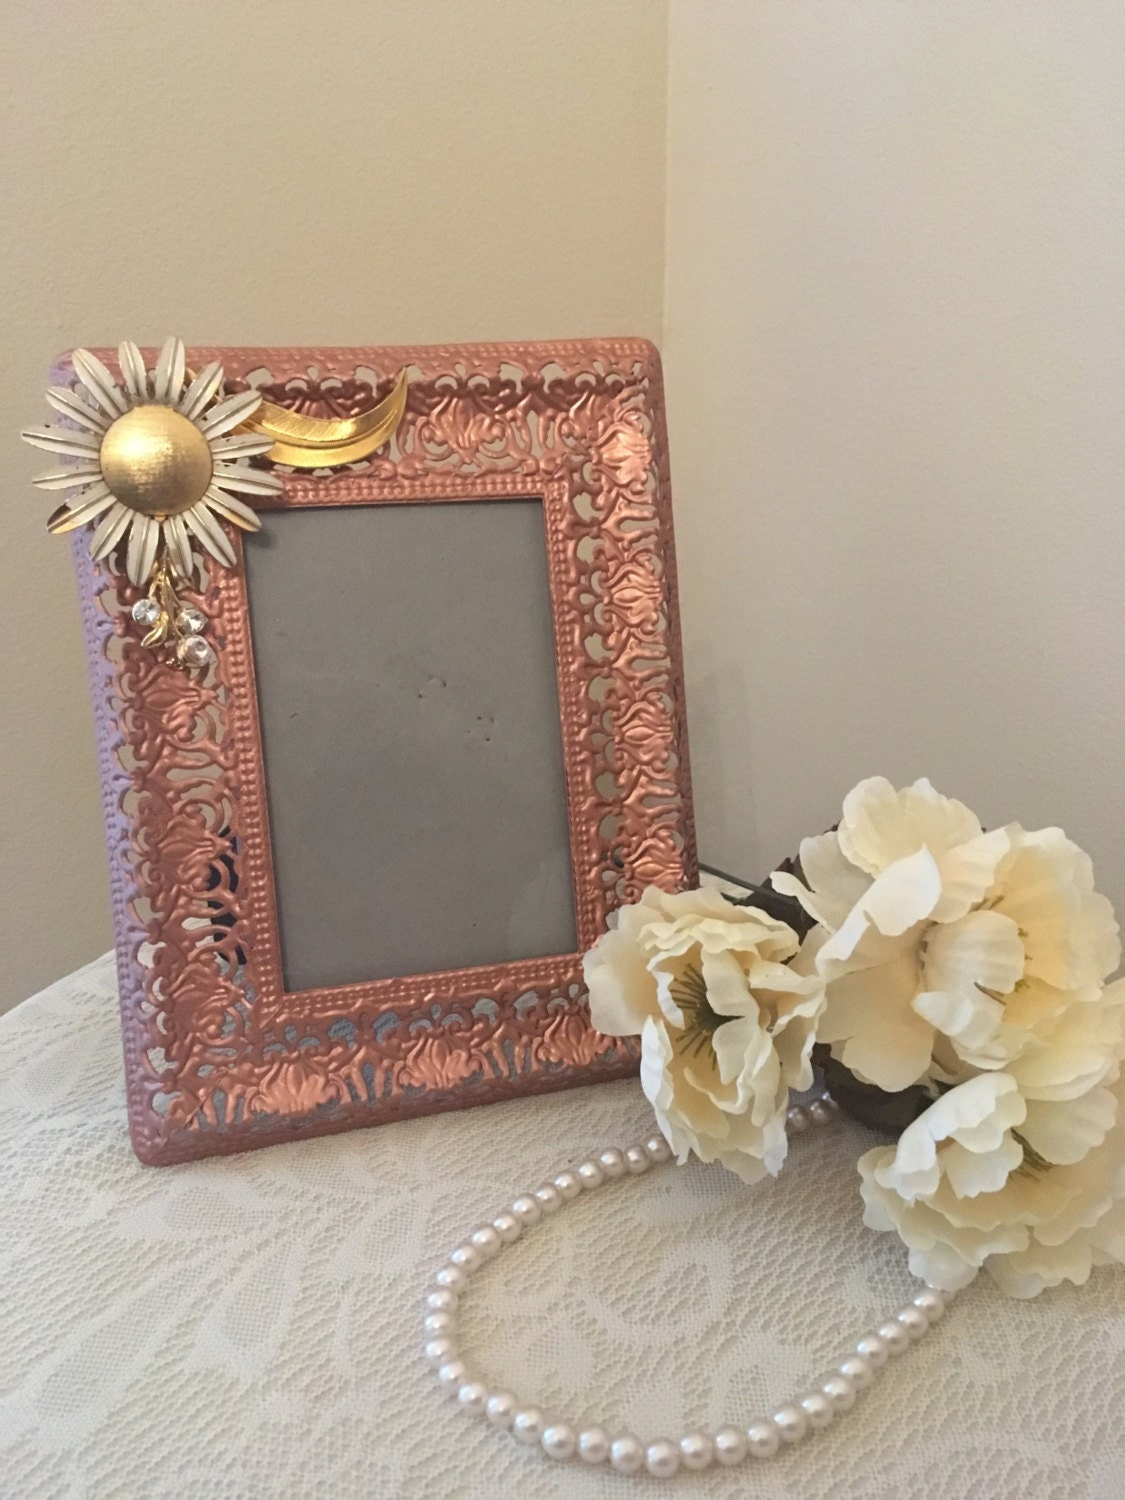 Sale rose gold home decor copper decor picture frame for Home decor items on sale